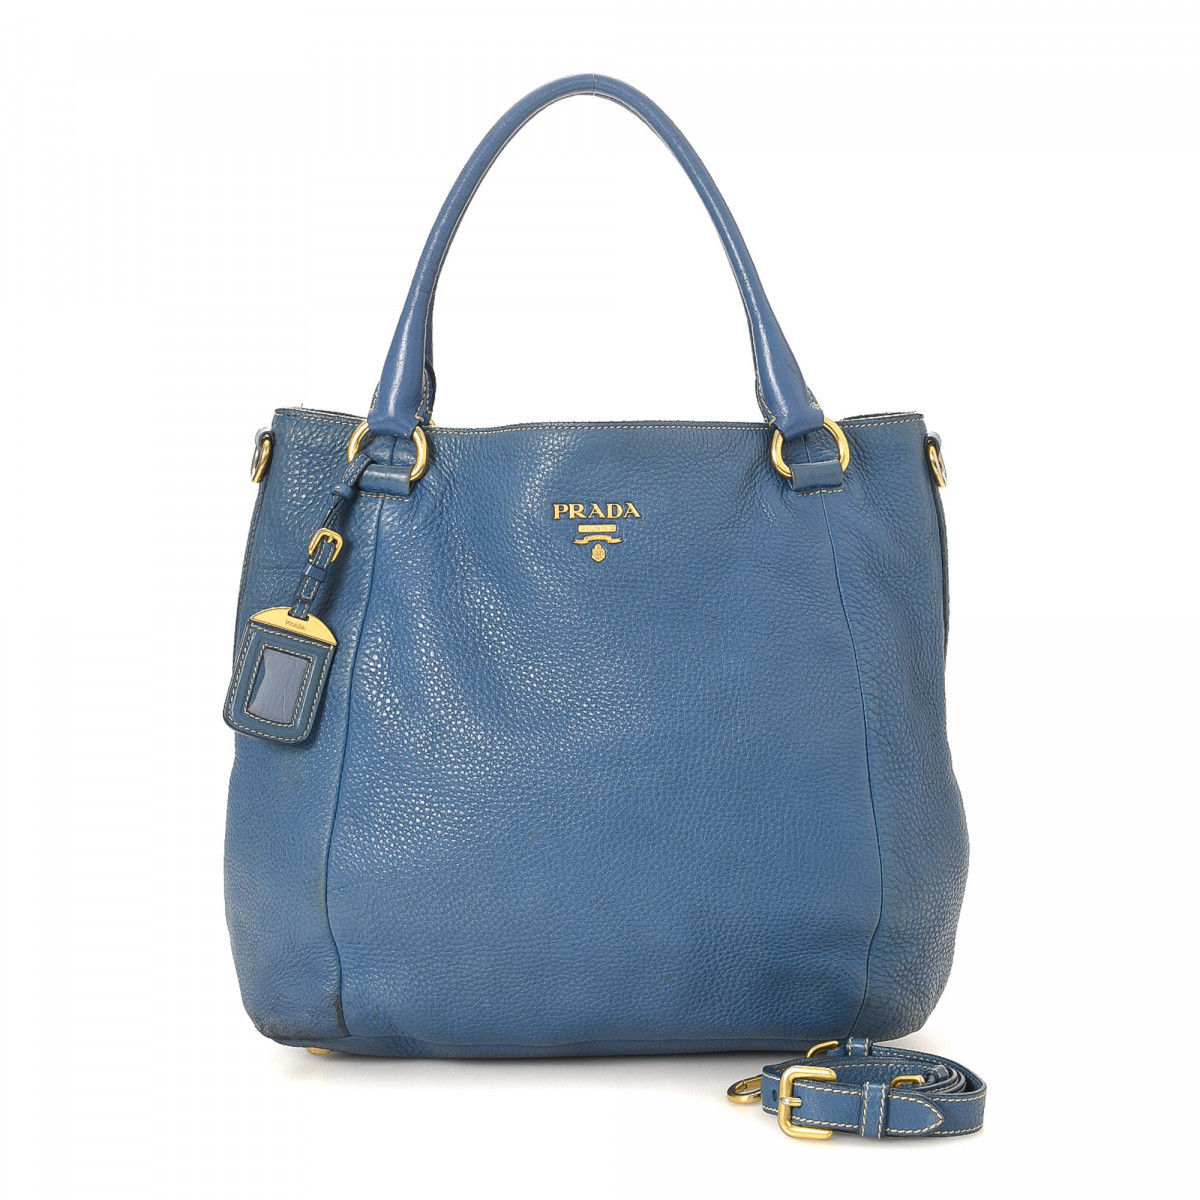 Prada Vitello Daino Two Way Tote Bag